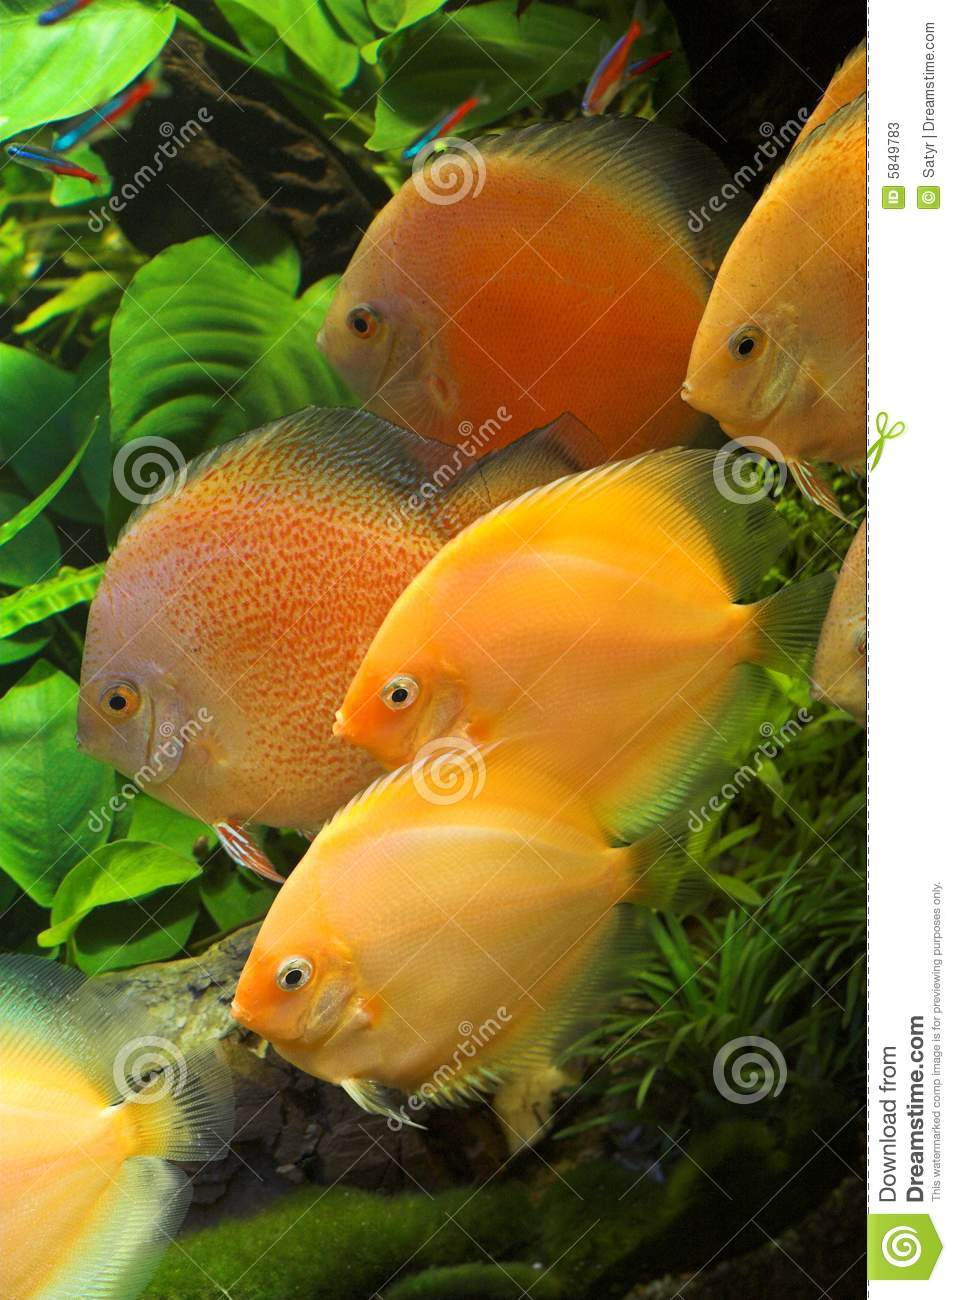 Poissons d 39 aquarium image stock image du aqua oc an for Prix poisson aquarium